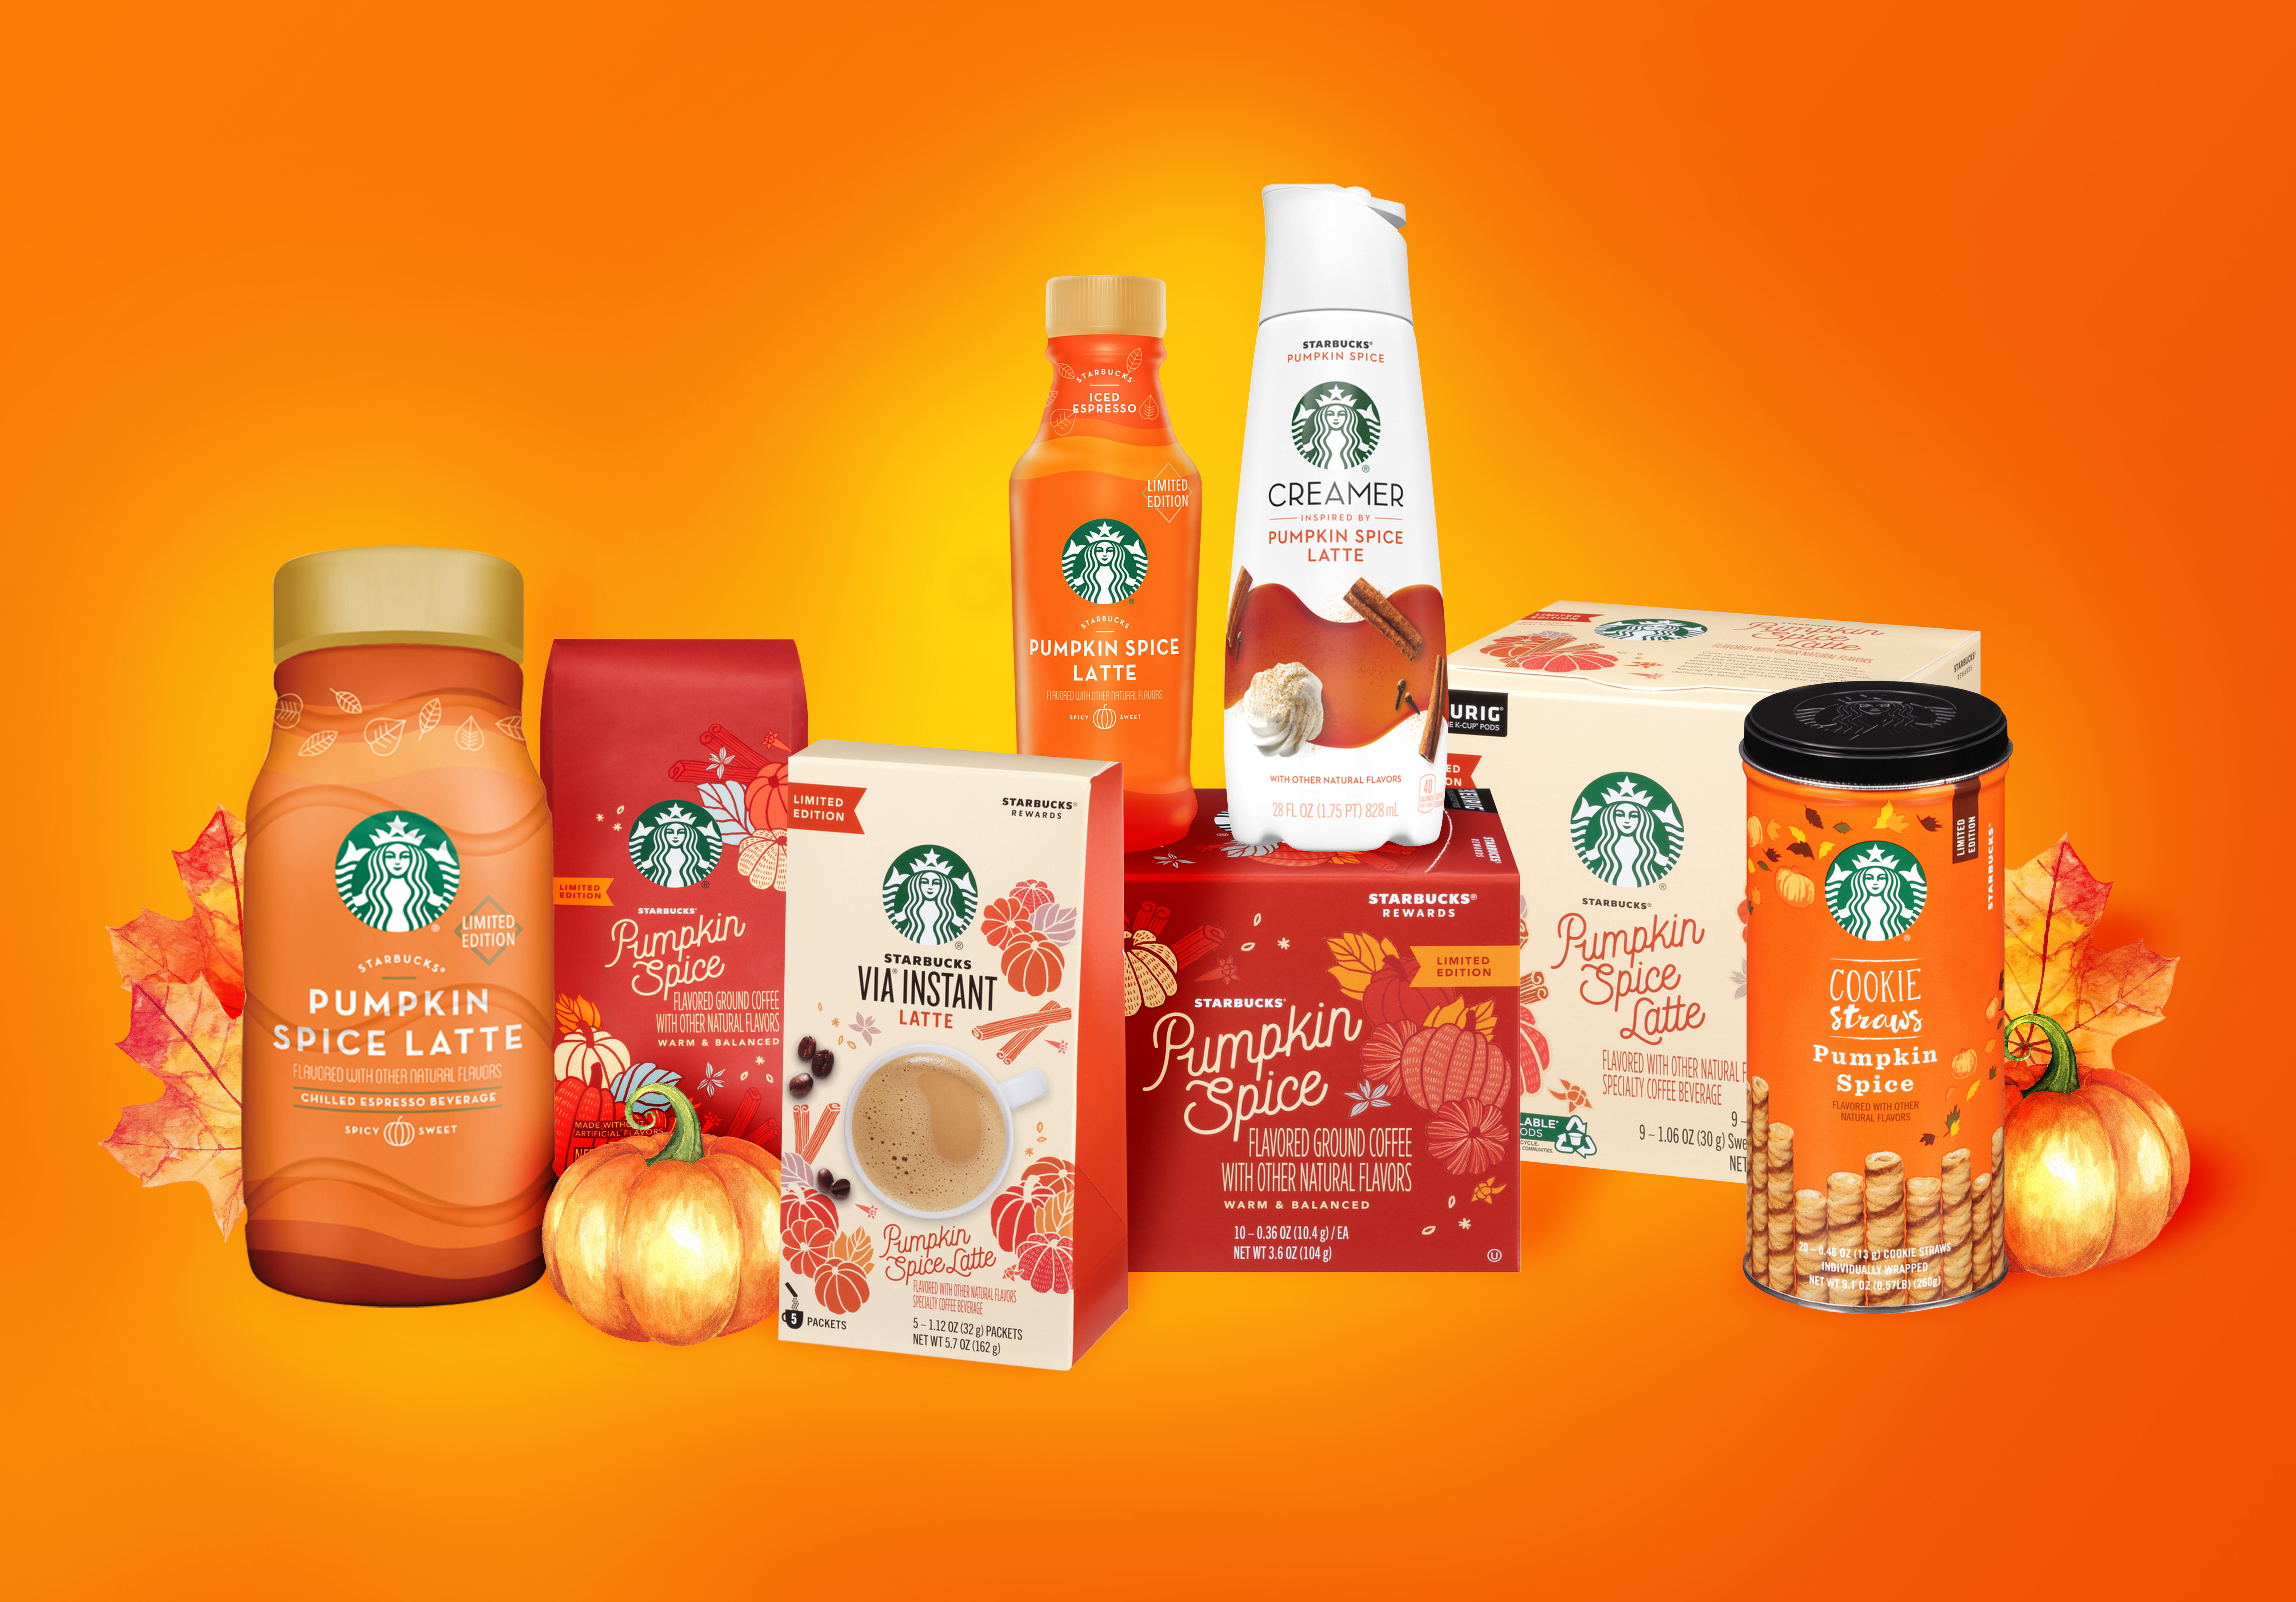 Starbucks Just Released New Pumpkin Spice Creamer For At